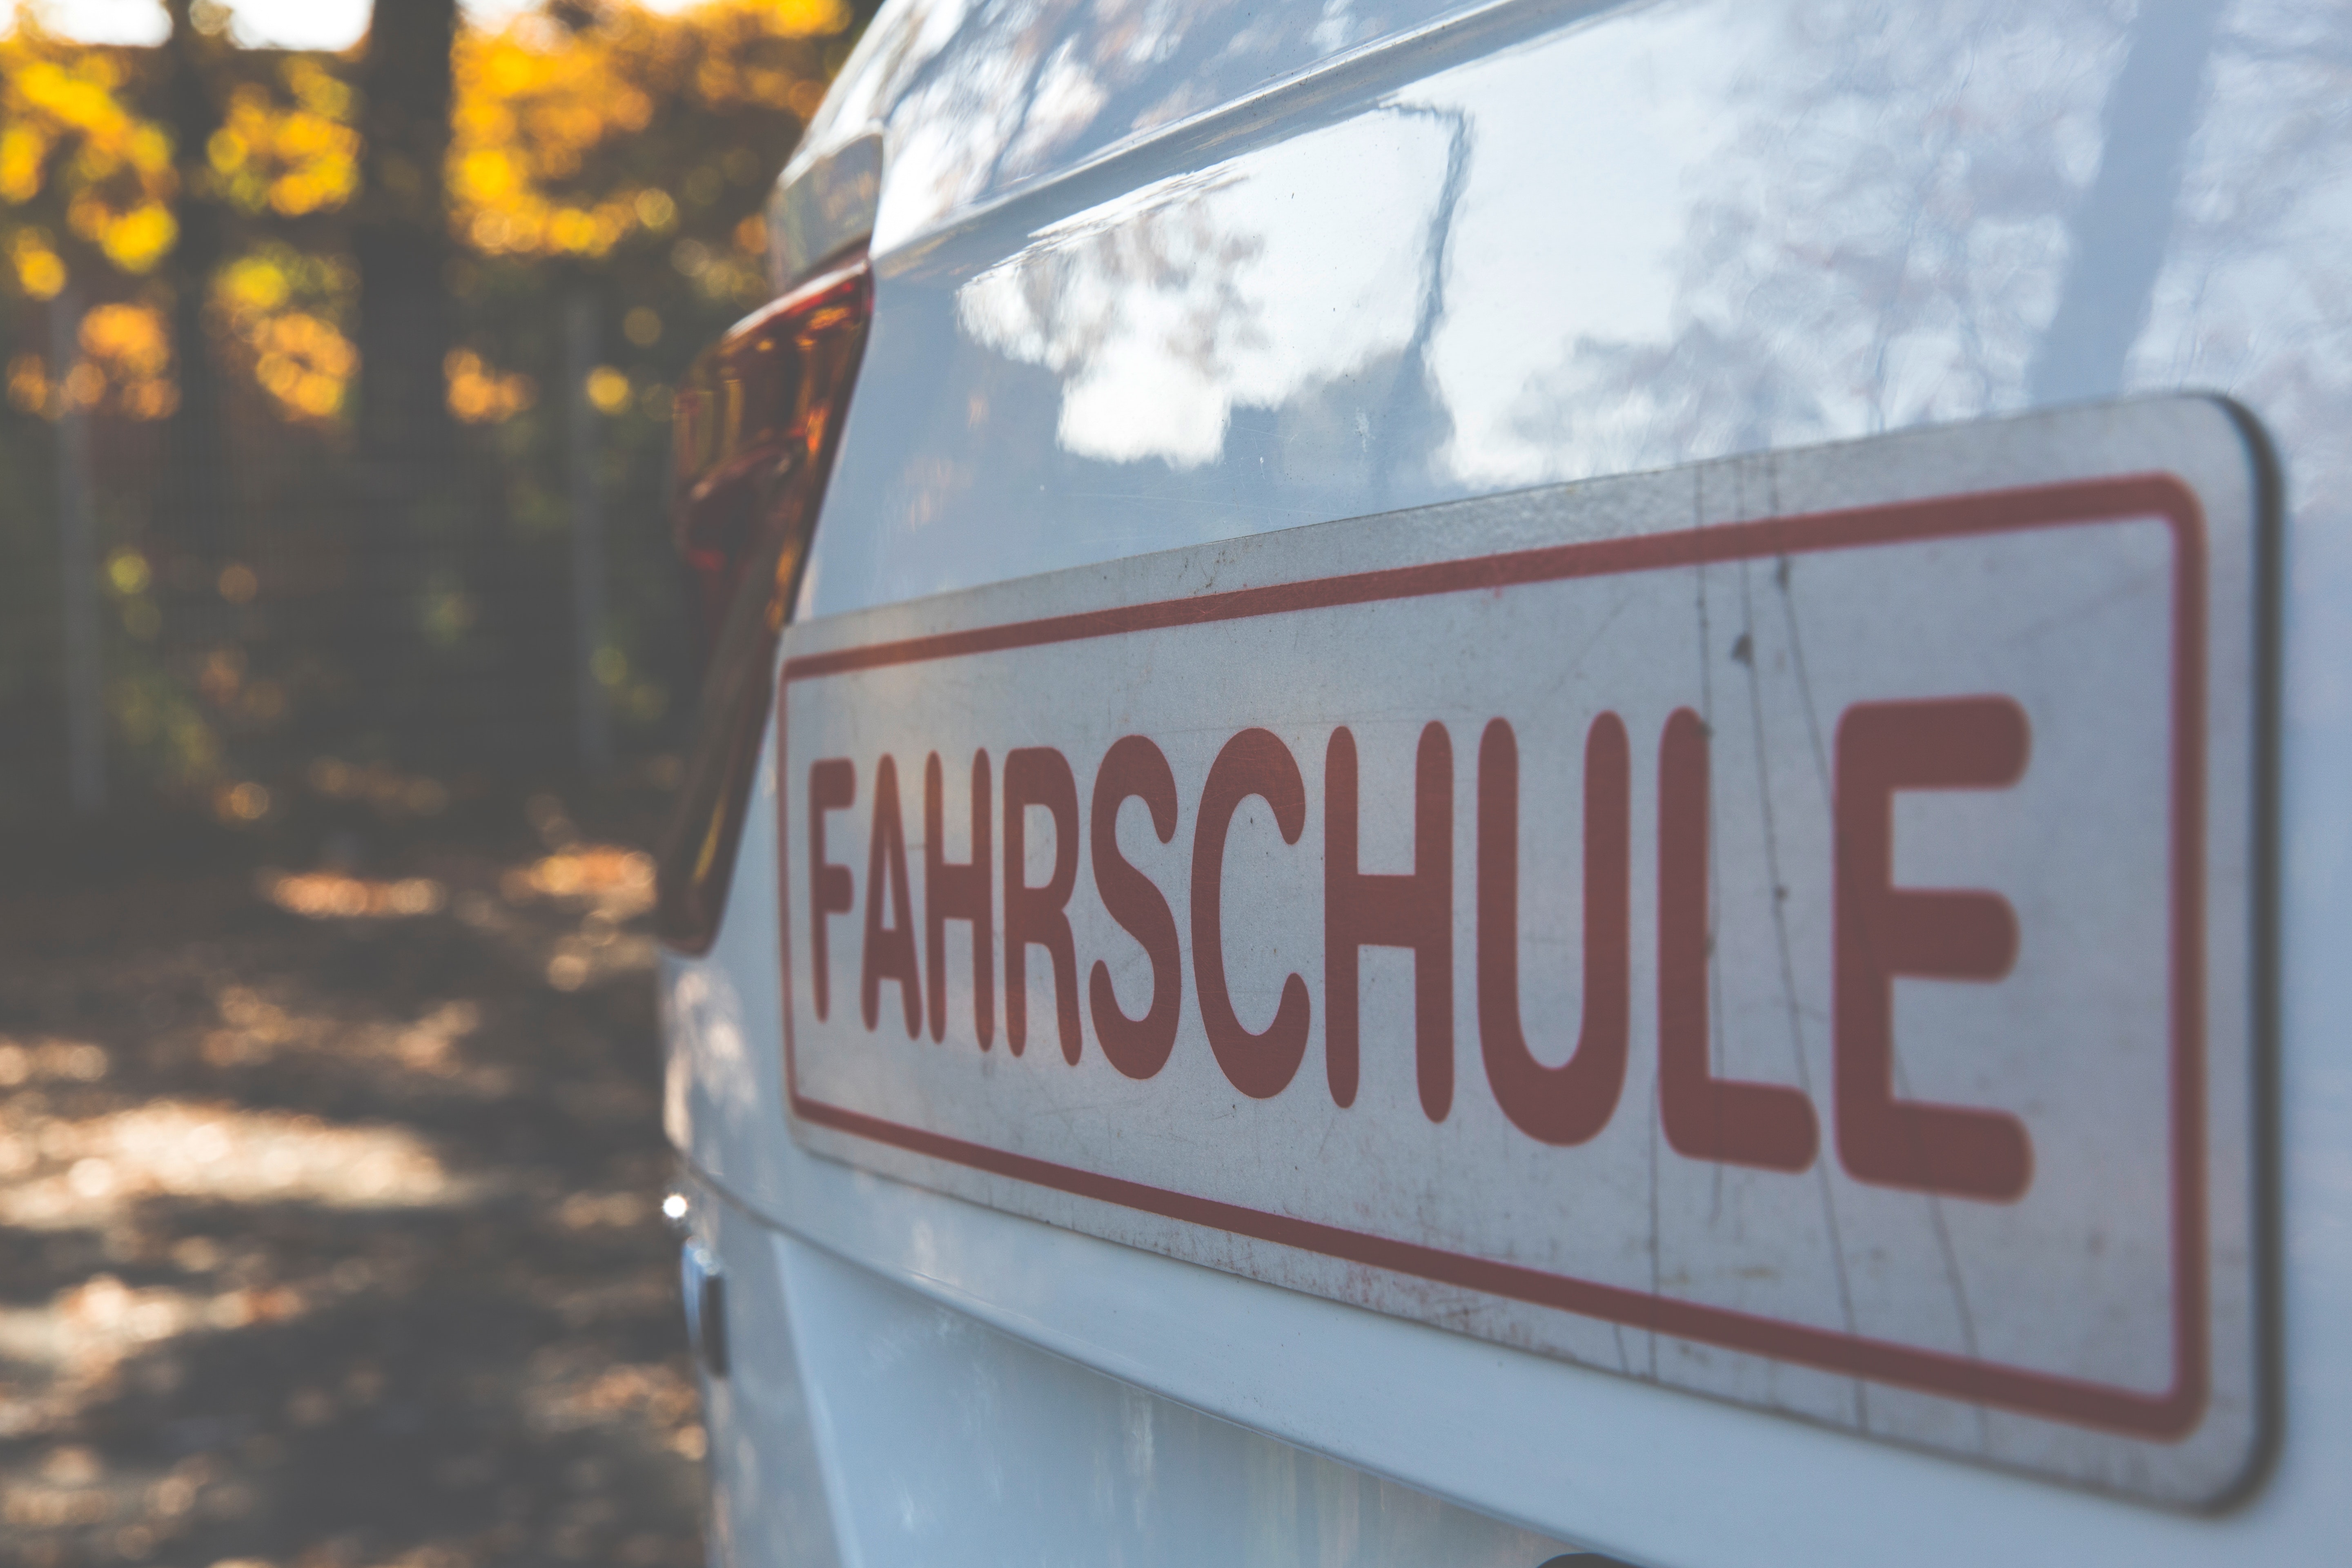 Fahrschule Signboard, Automobile, Rear, Turn signal, Trees, HQ Photo